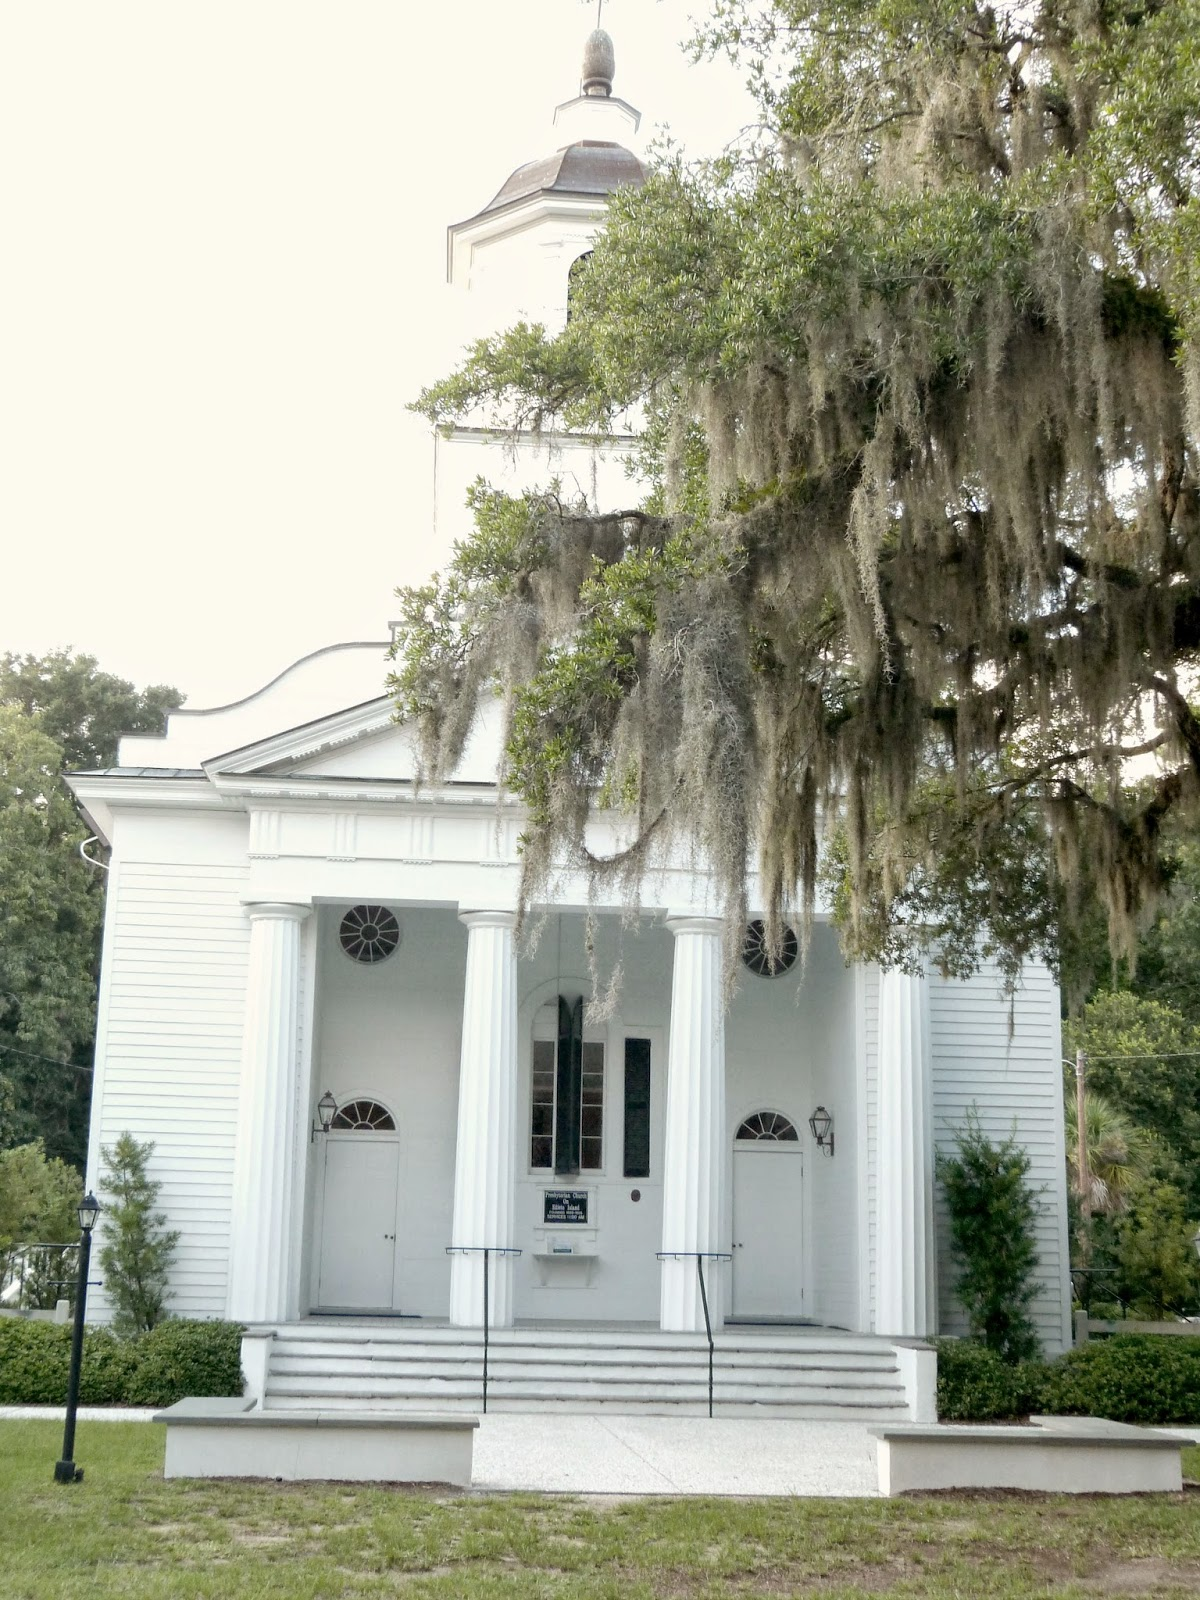 Edisto Presbyterian Church: Live Oaks, Southern History, and the Ghost of Julia Legare | CosmosMariners.com